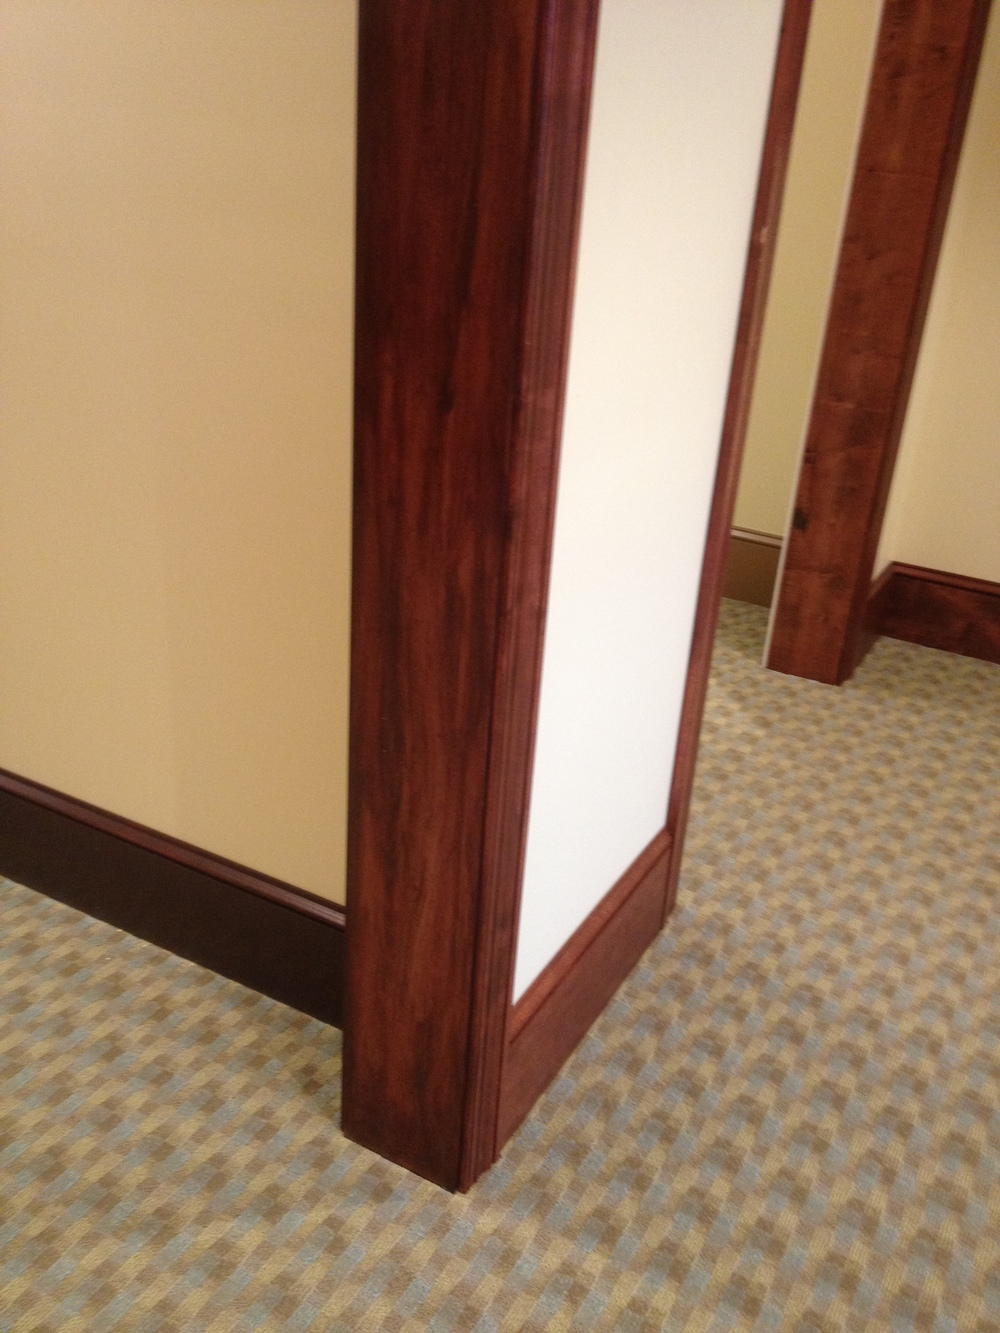 Faux Wood Doors Spring Ridge Golf Country Club (7).JPG